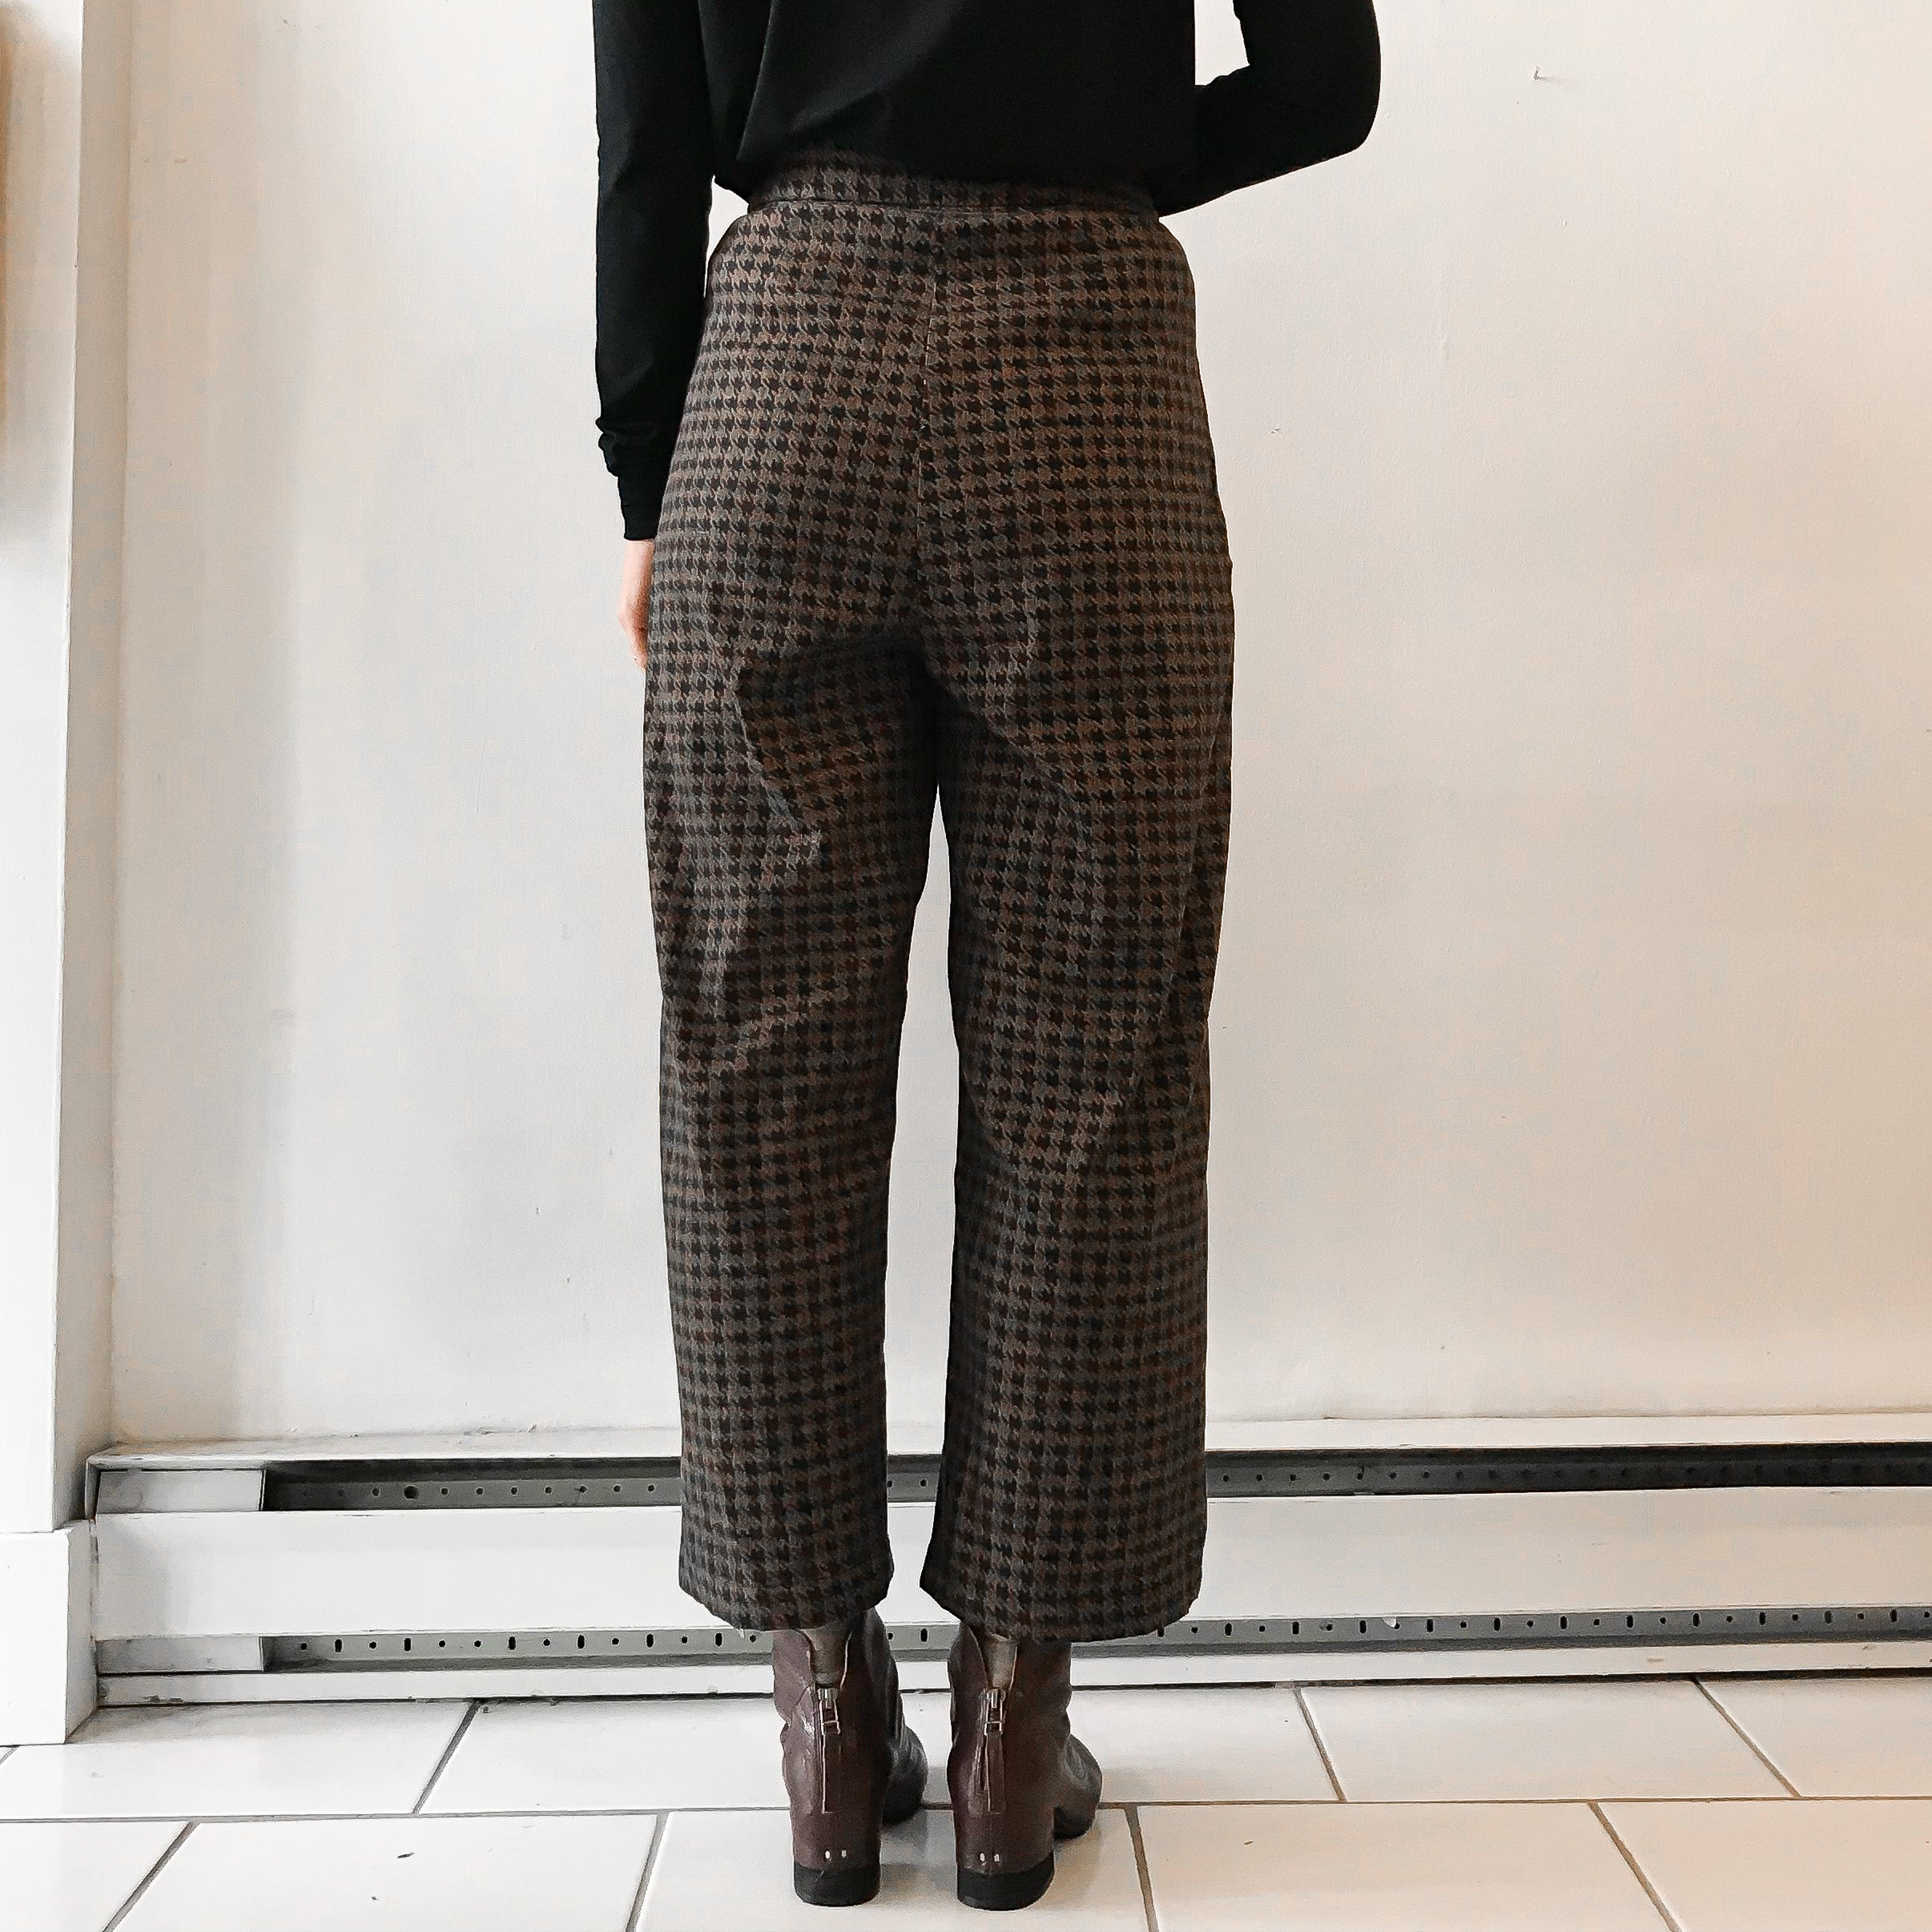 MELOW | BRANDON High Waist Pants - Toffee